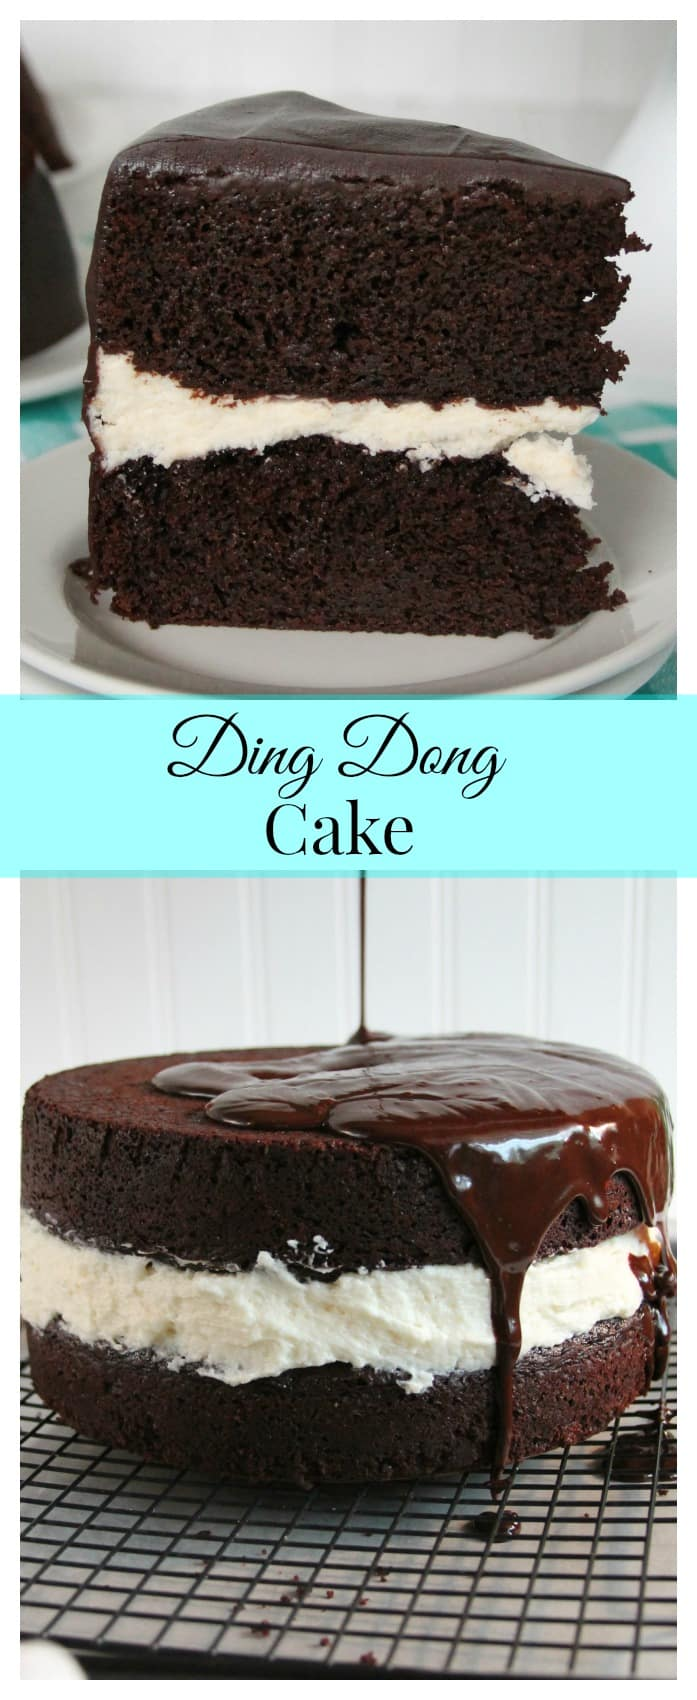 Ding Dong Cake Recipe - Chocolate Chocolate and More!